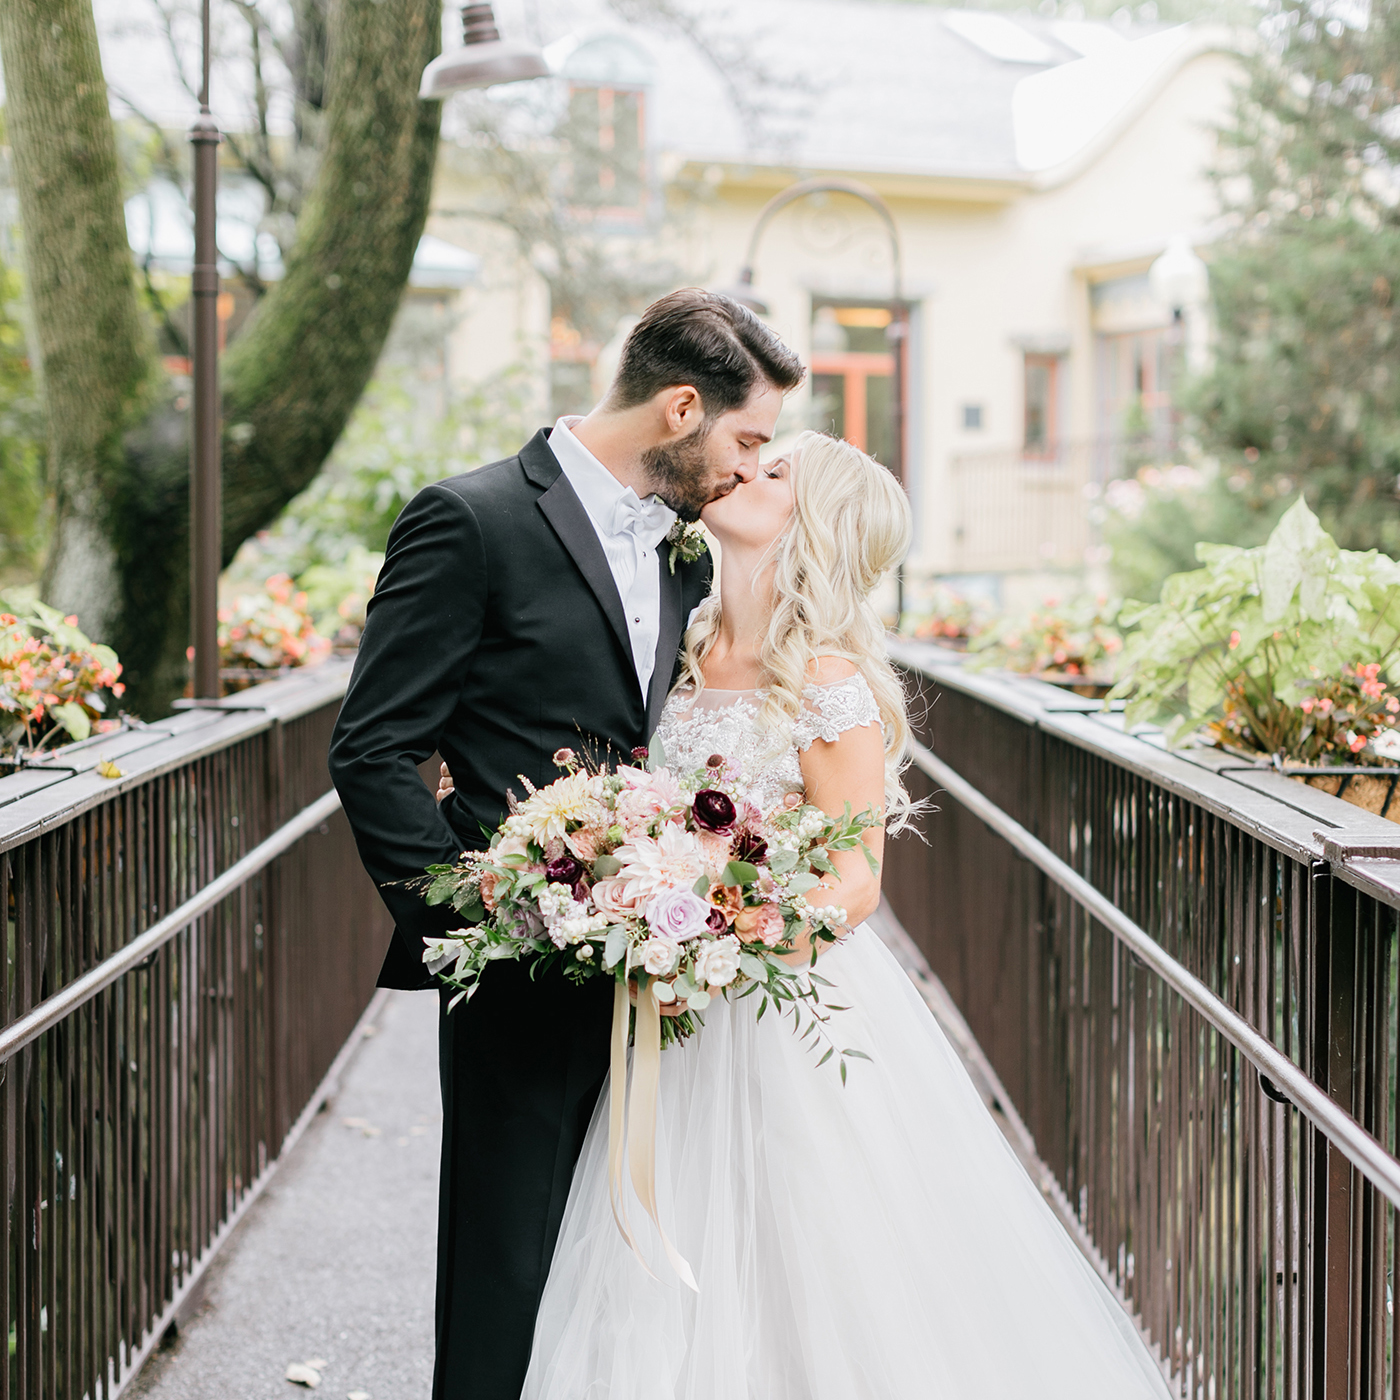 Kate & Joe | An emotional, romantic, woodland wedding in Radnor, PA | Emily Wren Photography